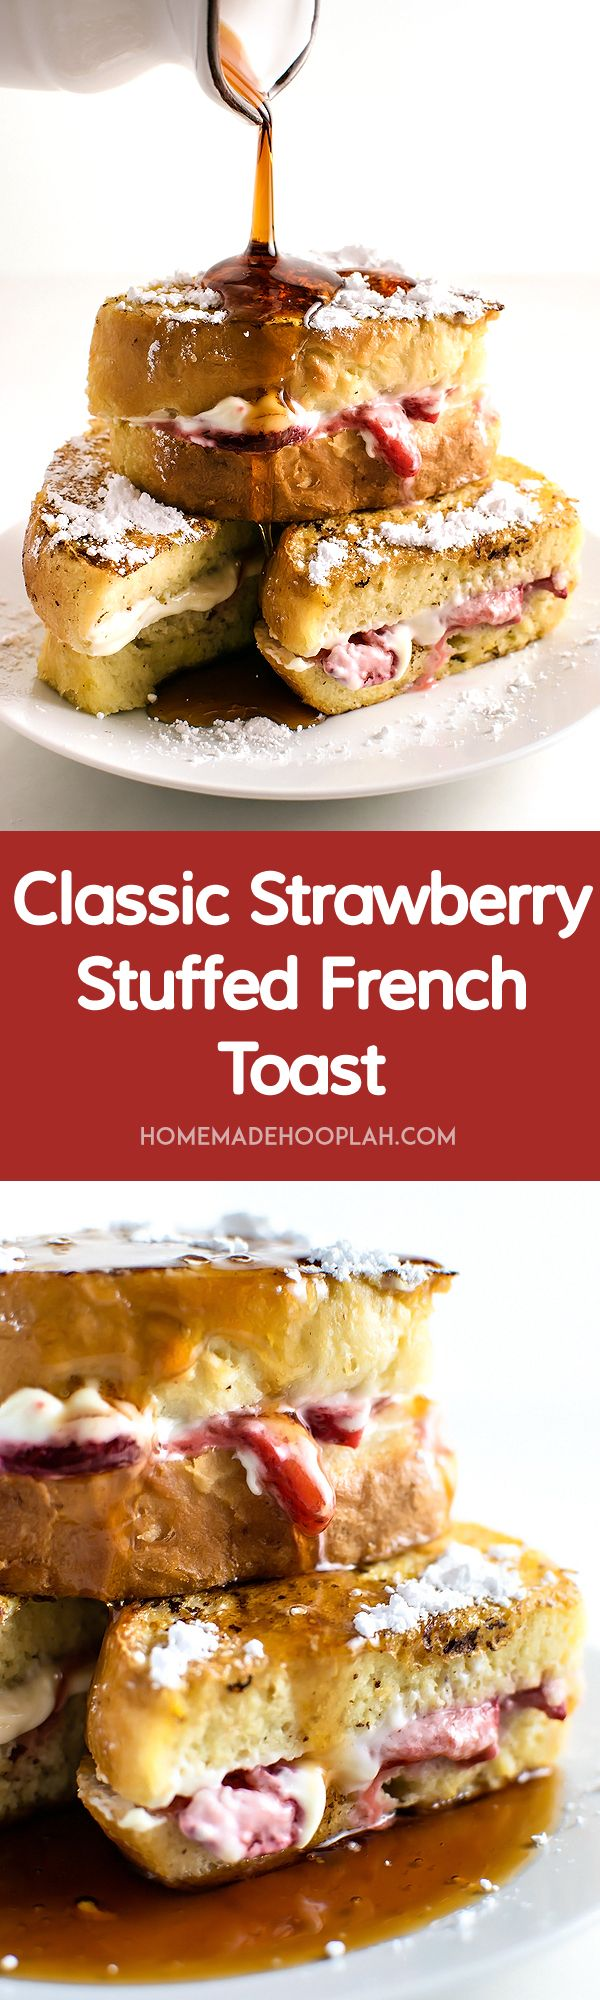 Classic Strawberry Stuffed French Toast! Vanilla and cinnamon french toast stuffed with sweet cream cheese filling and sugar coated strawberries. The classic indulgent breakfast!! | HomemadeHooplah.com